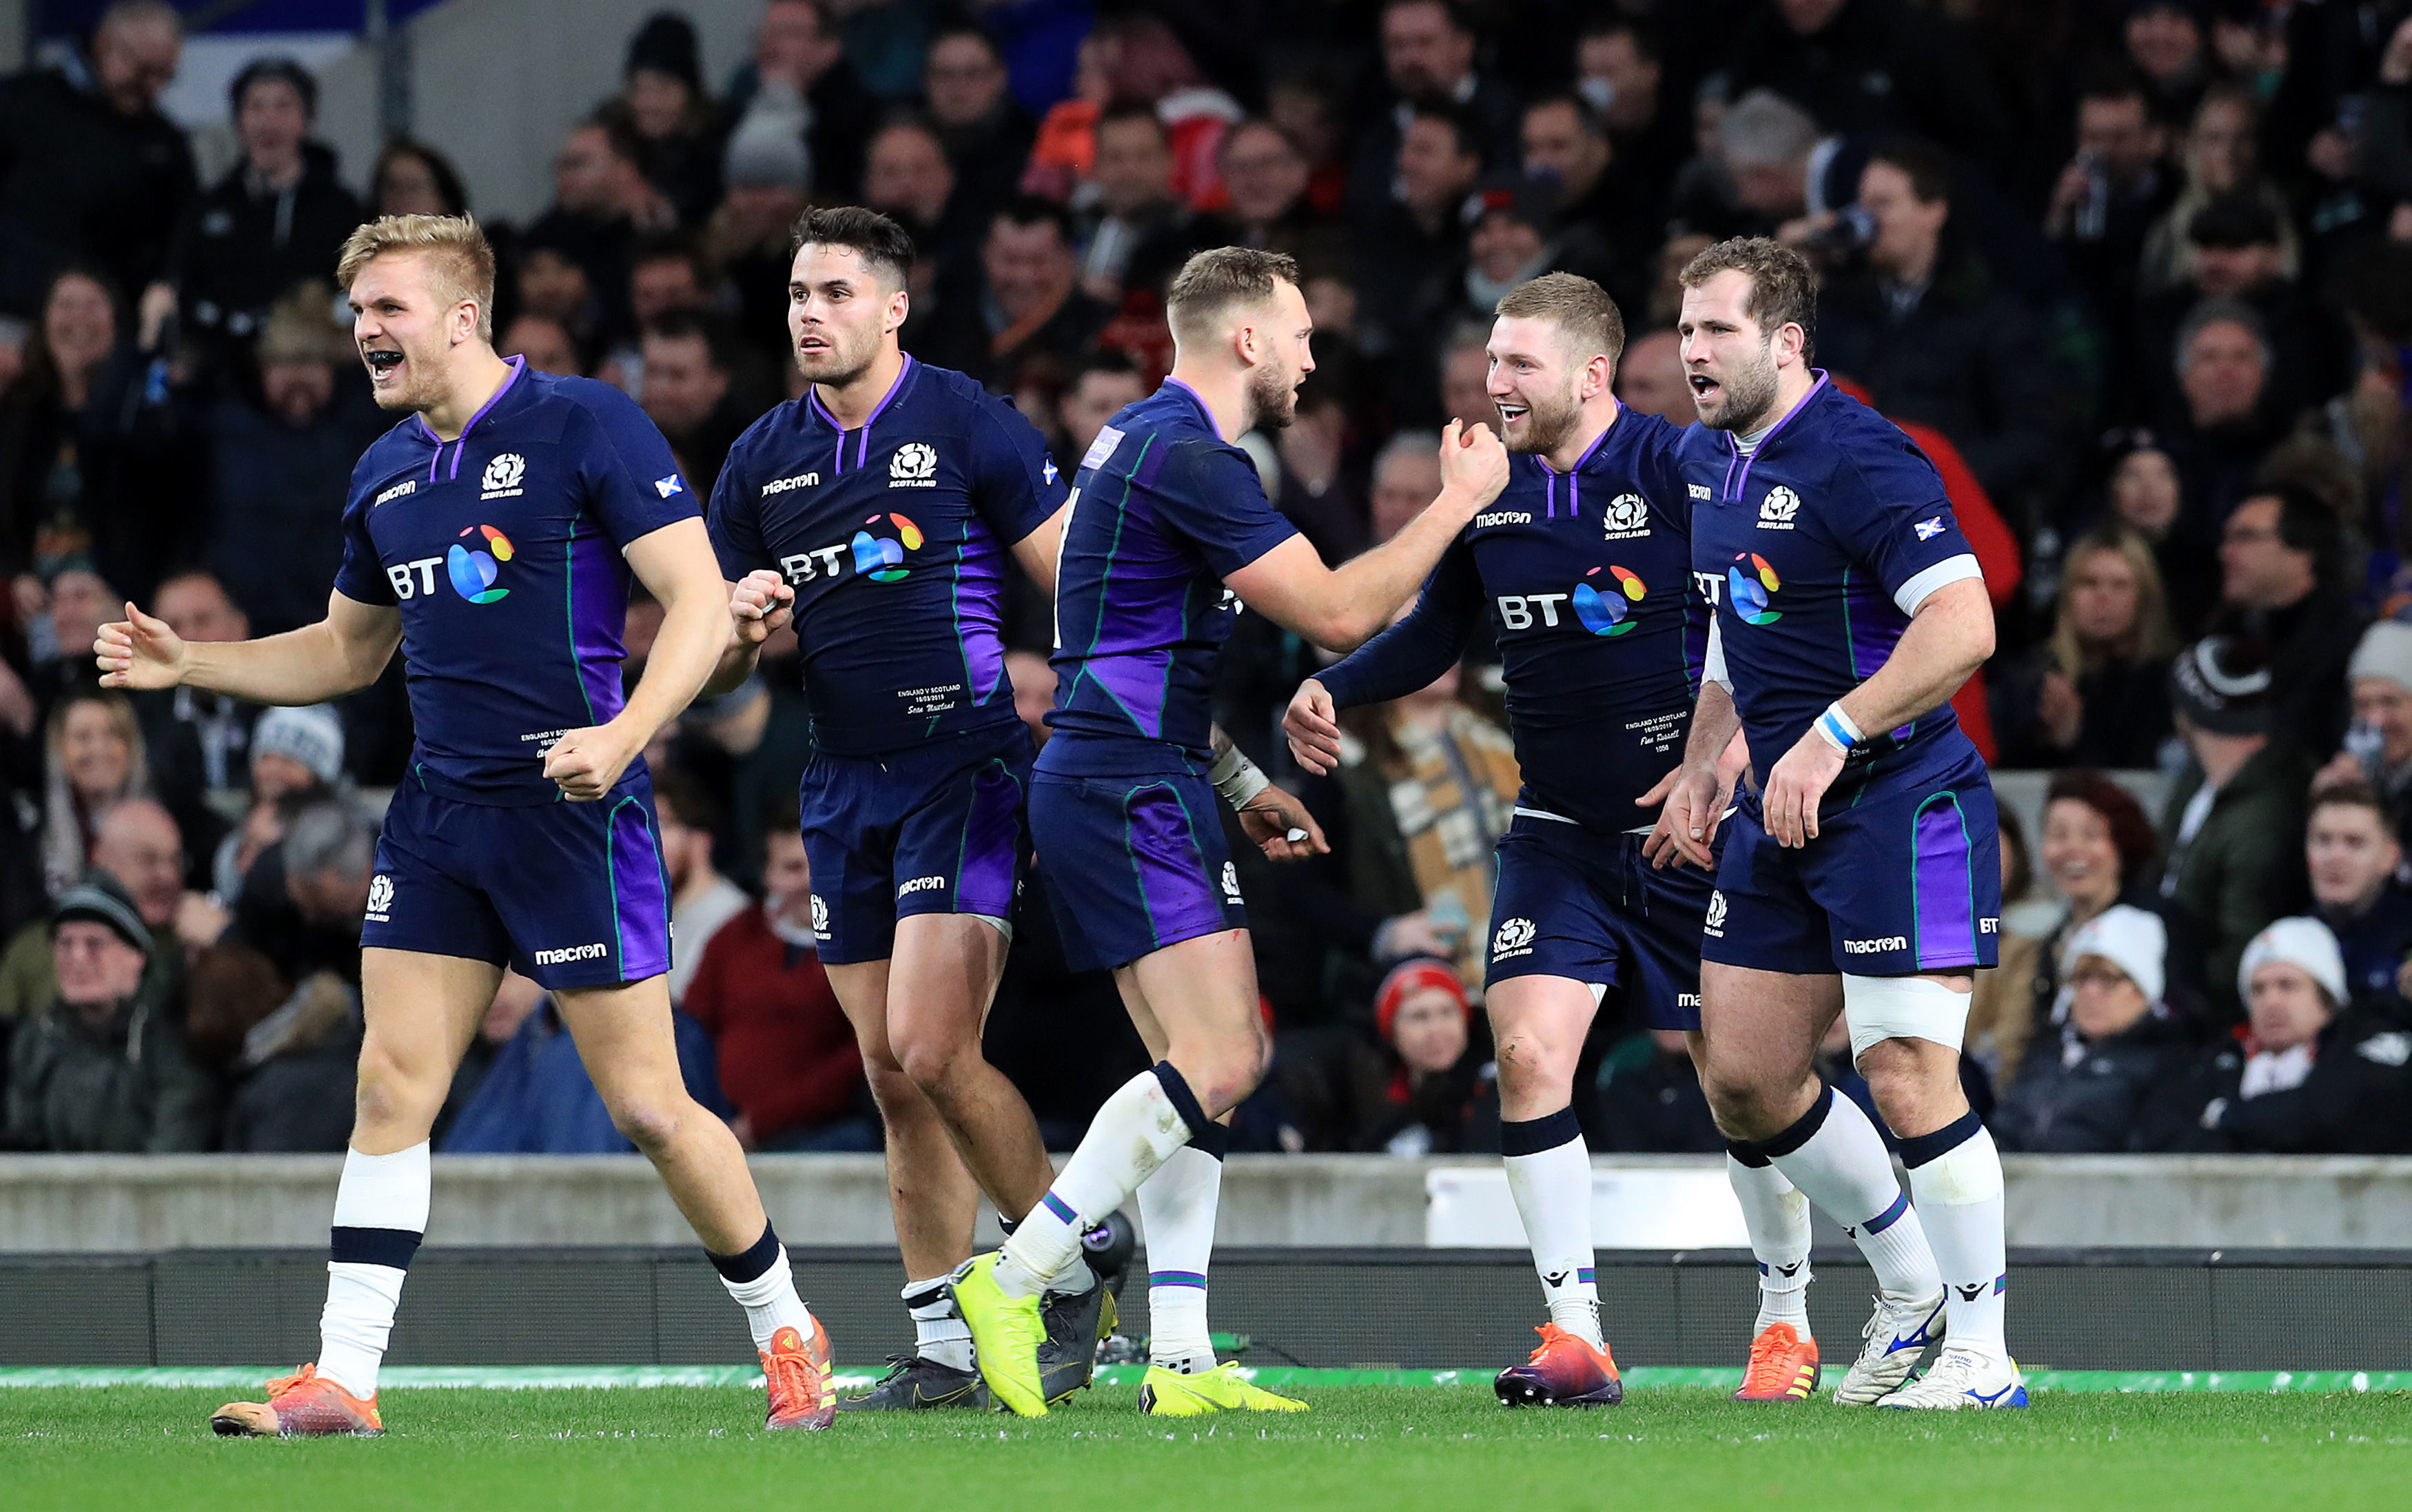 Finn Russell celebrates his try with team-mates at Twickenham during the 2019 Calcutta Cup.